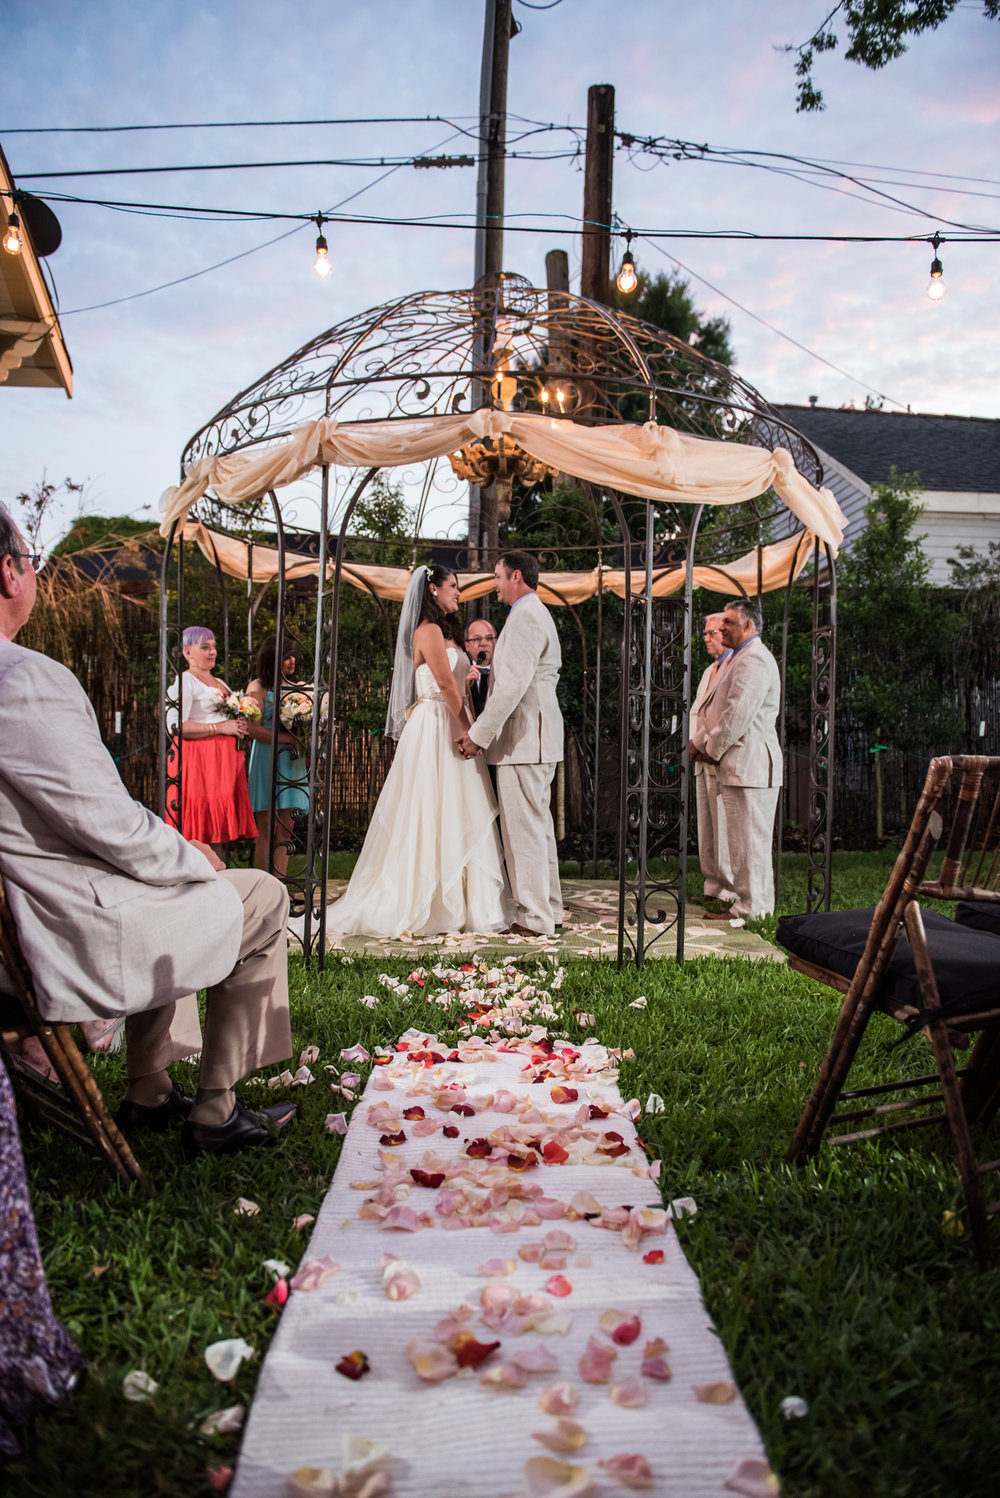 Backyard wedding ceremony in Lakeview, New Orleans